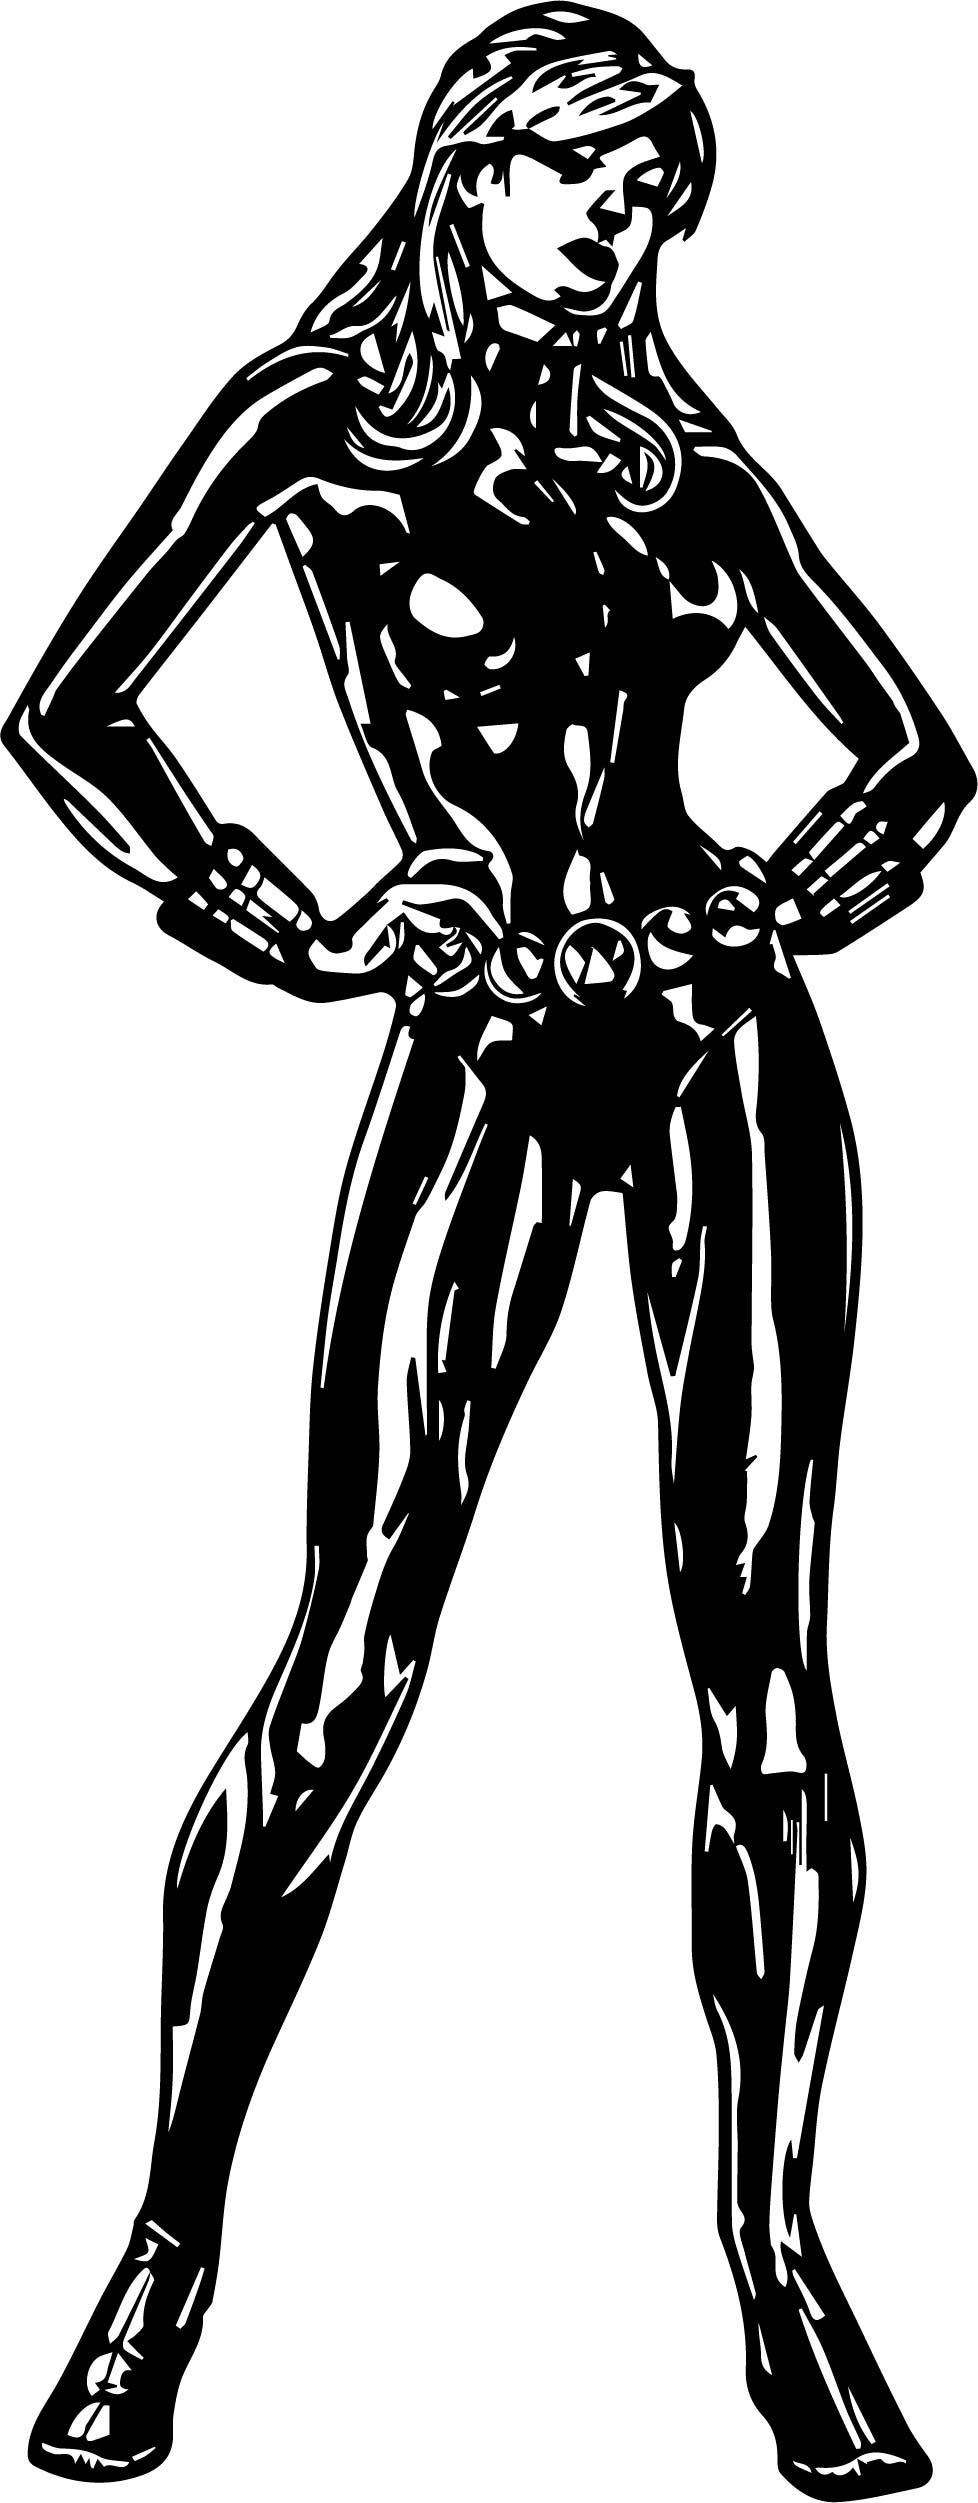 Black Widow Avengers Coloring Pages Black Widow Avengers Assemble Coloring Page Wecoloringpage